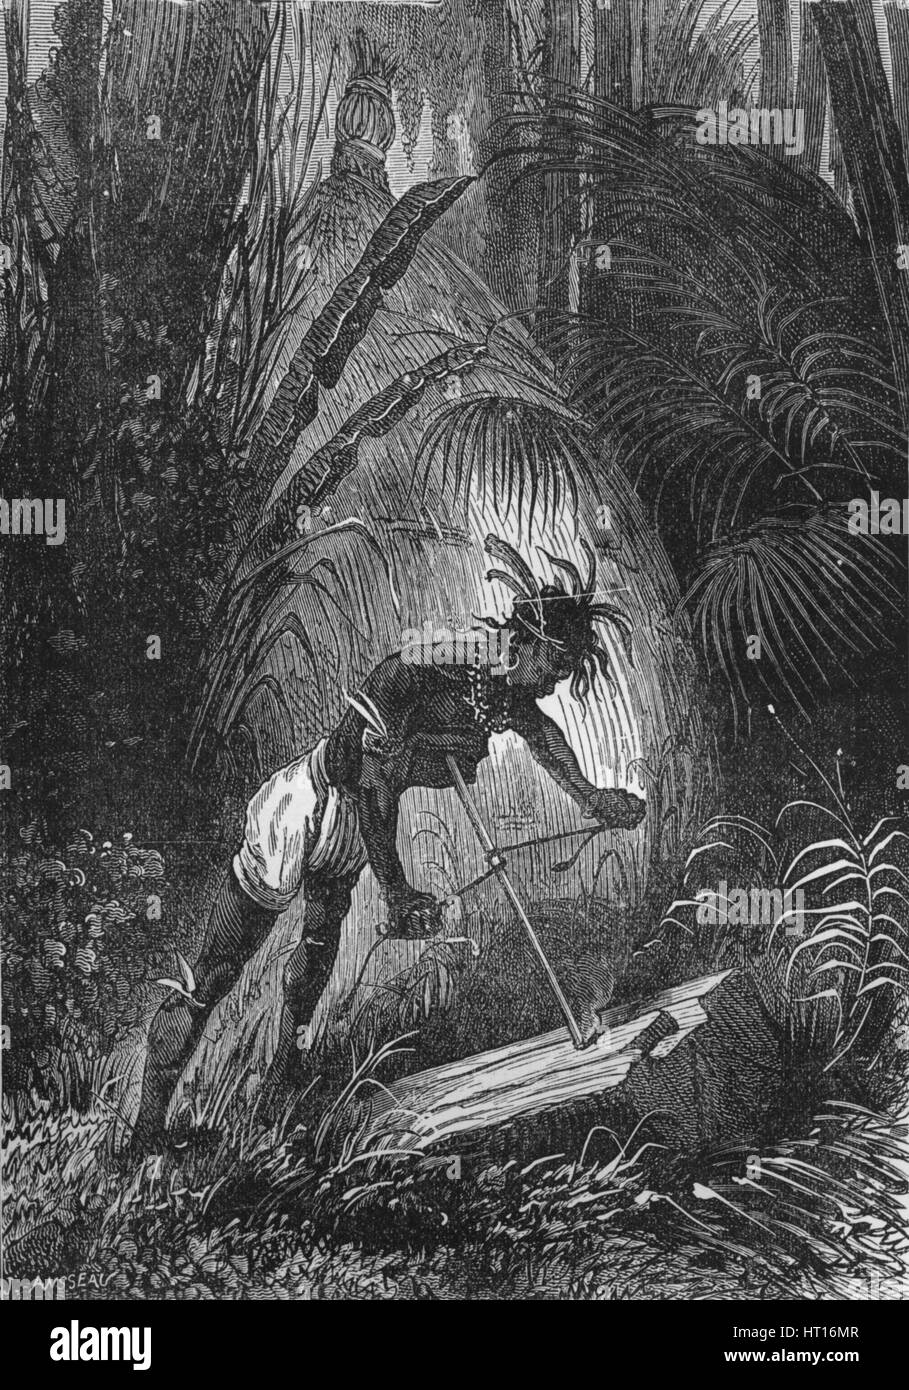 An Indian obtaining fire by friction, 1894. Artist: Unknown. - Stock Image